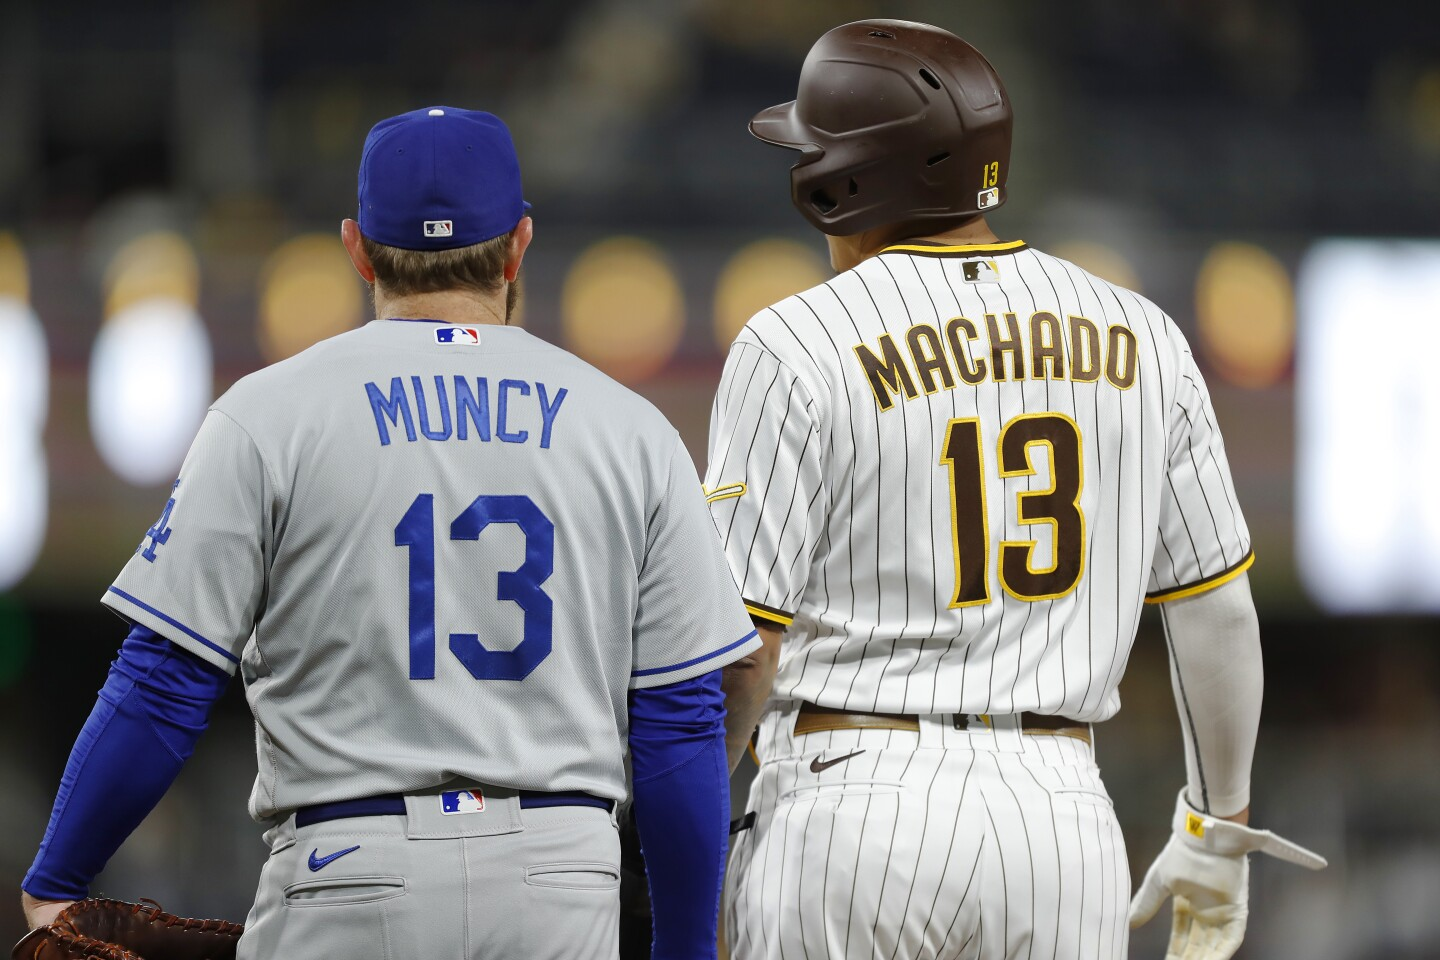 Los Angeles Dodgers' Max Muncy and San Diego Padres' Manny Machado stand at first base in the second inning.